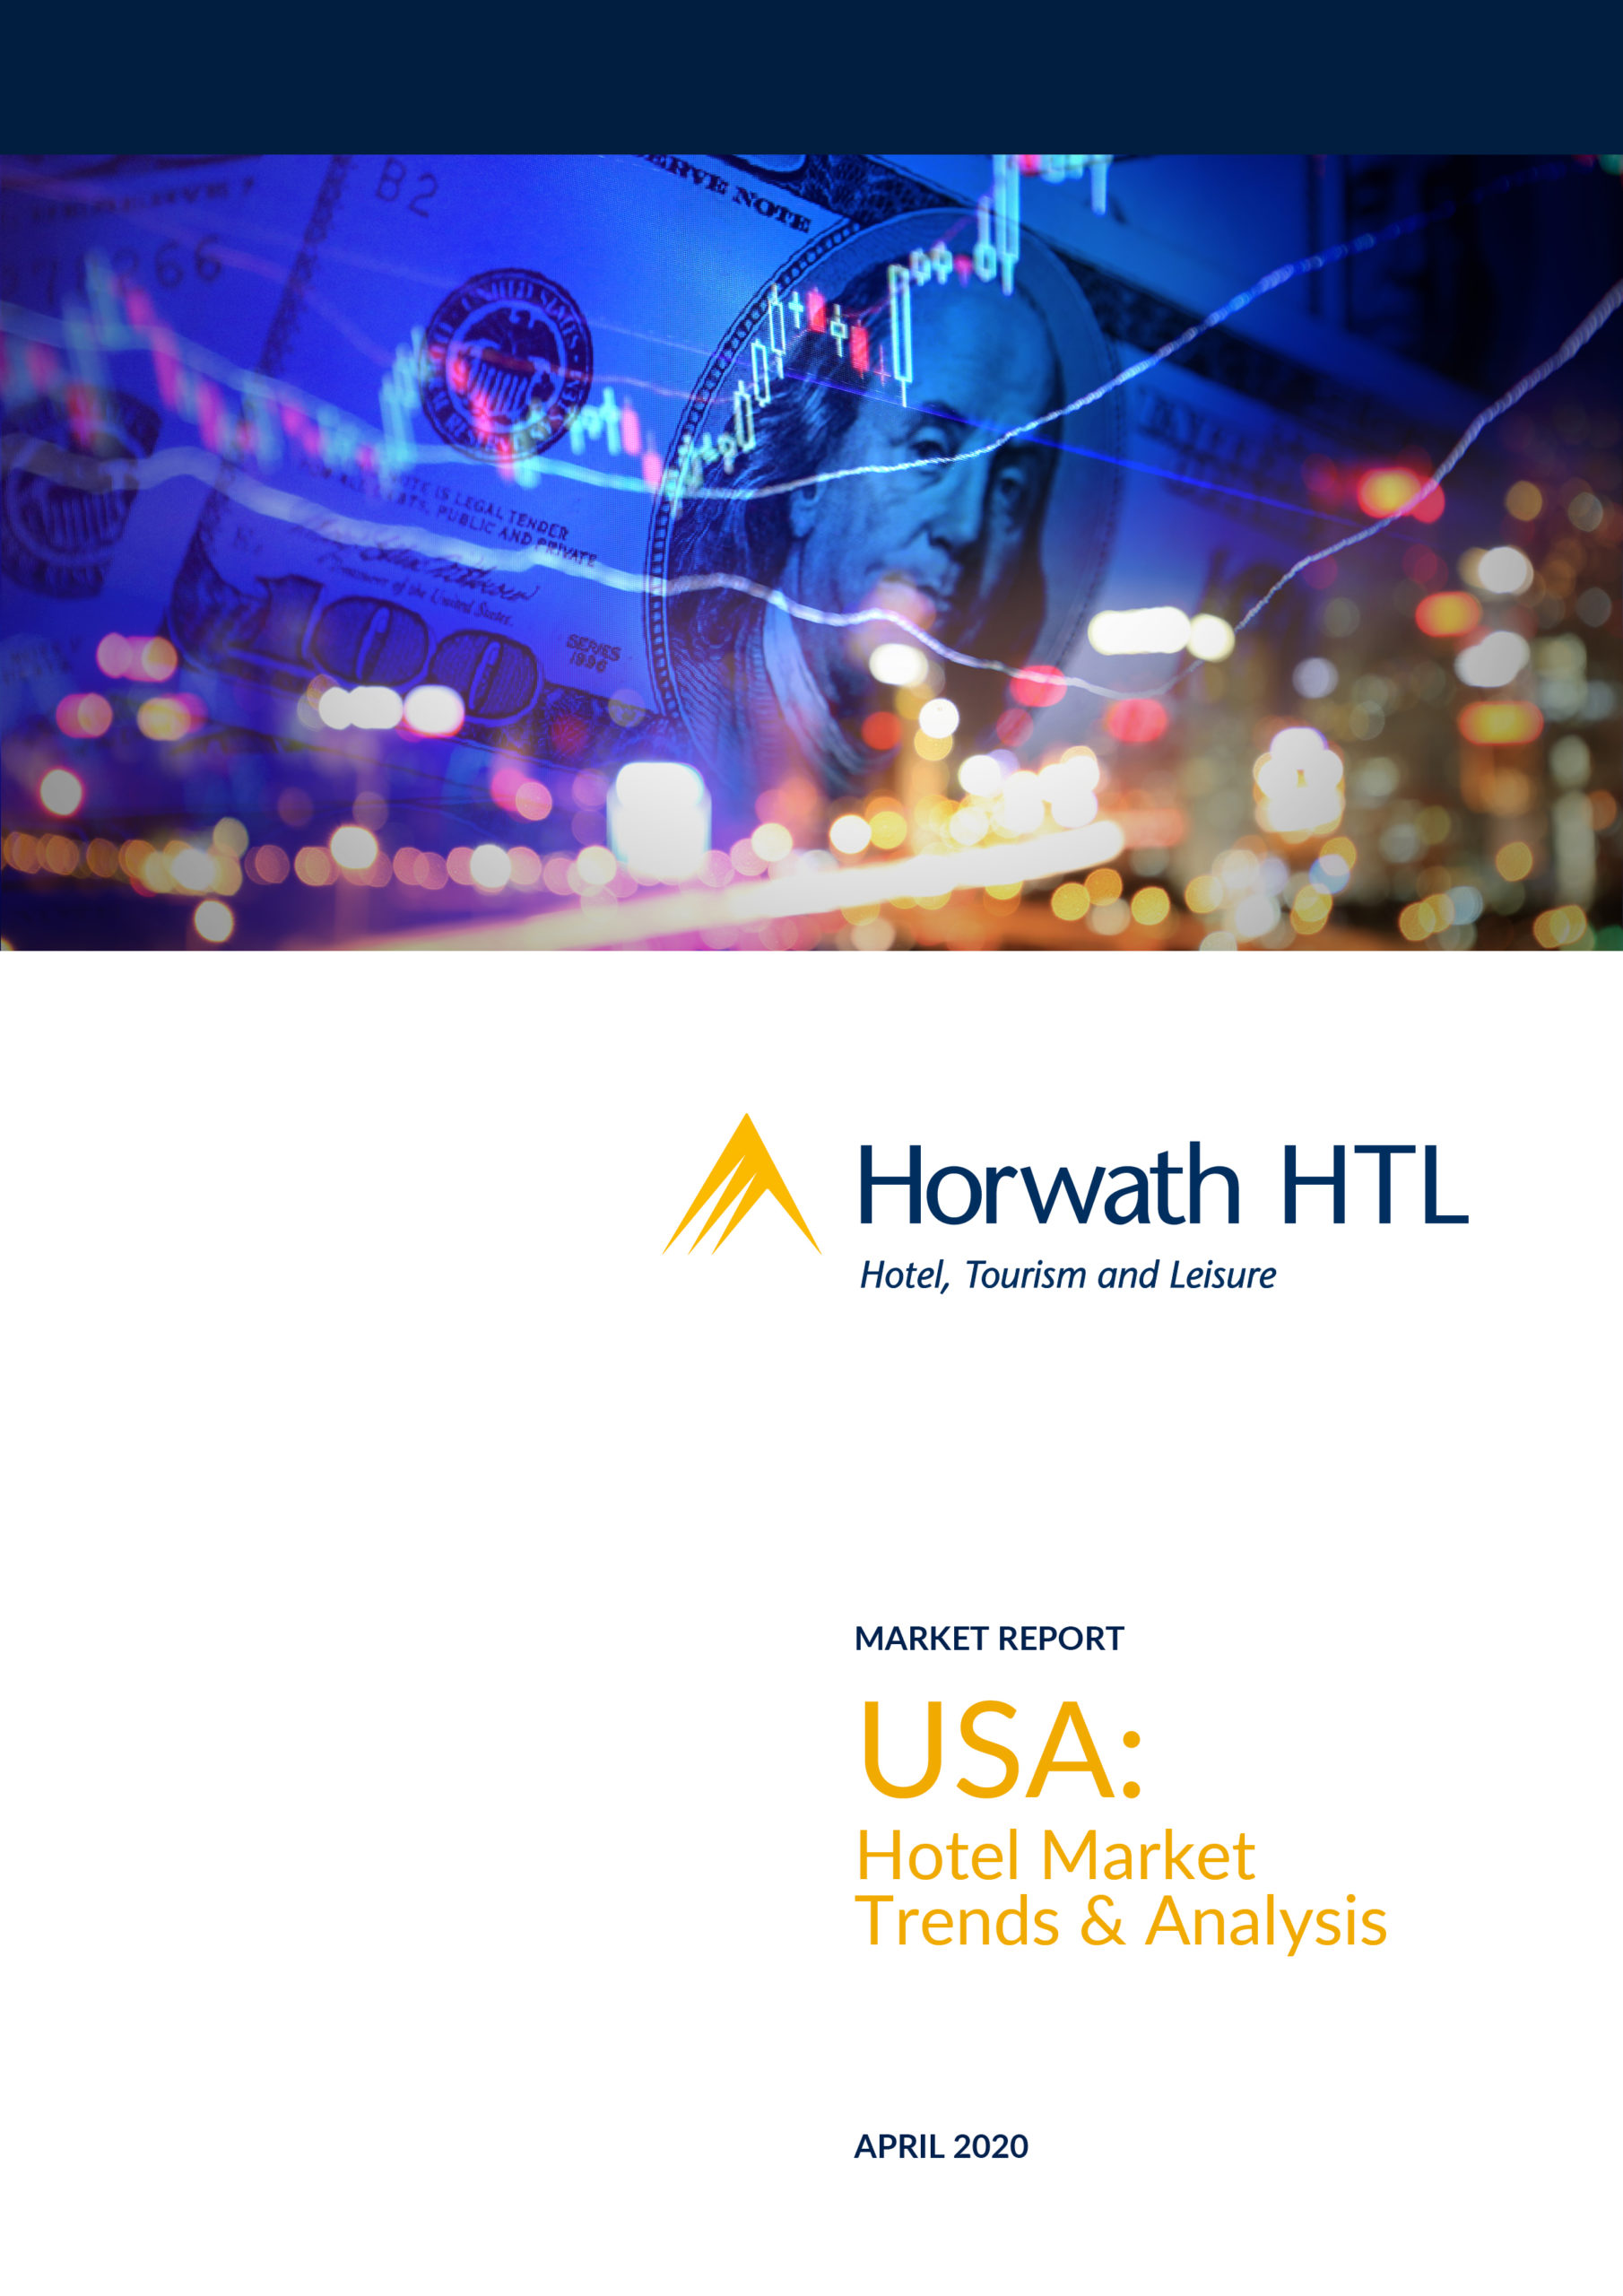 Market Report USA Hotel Market Trends Analysis scaled 1